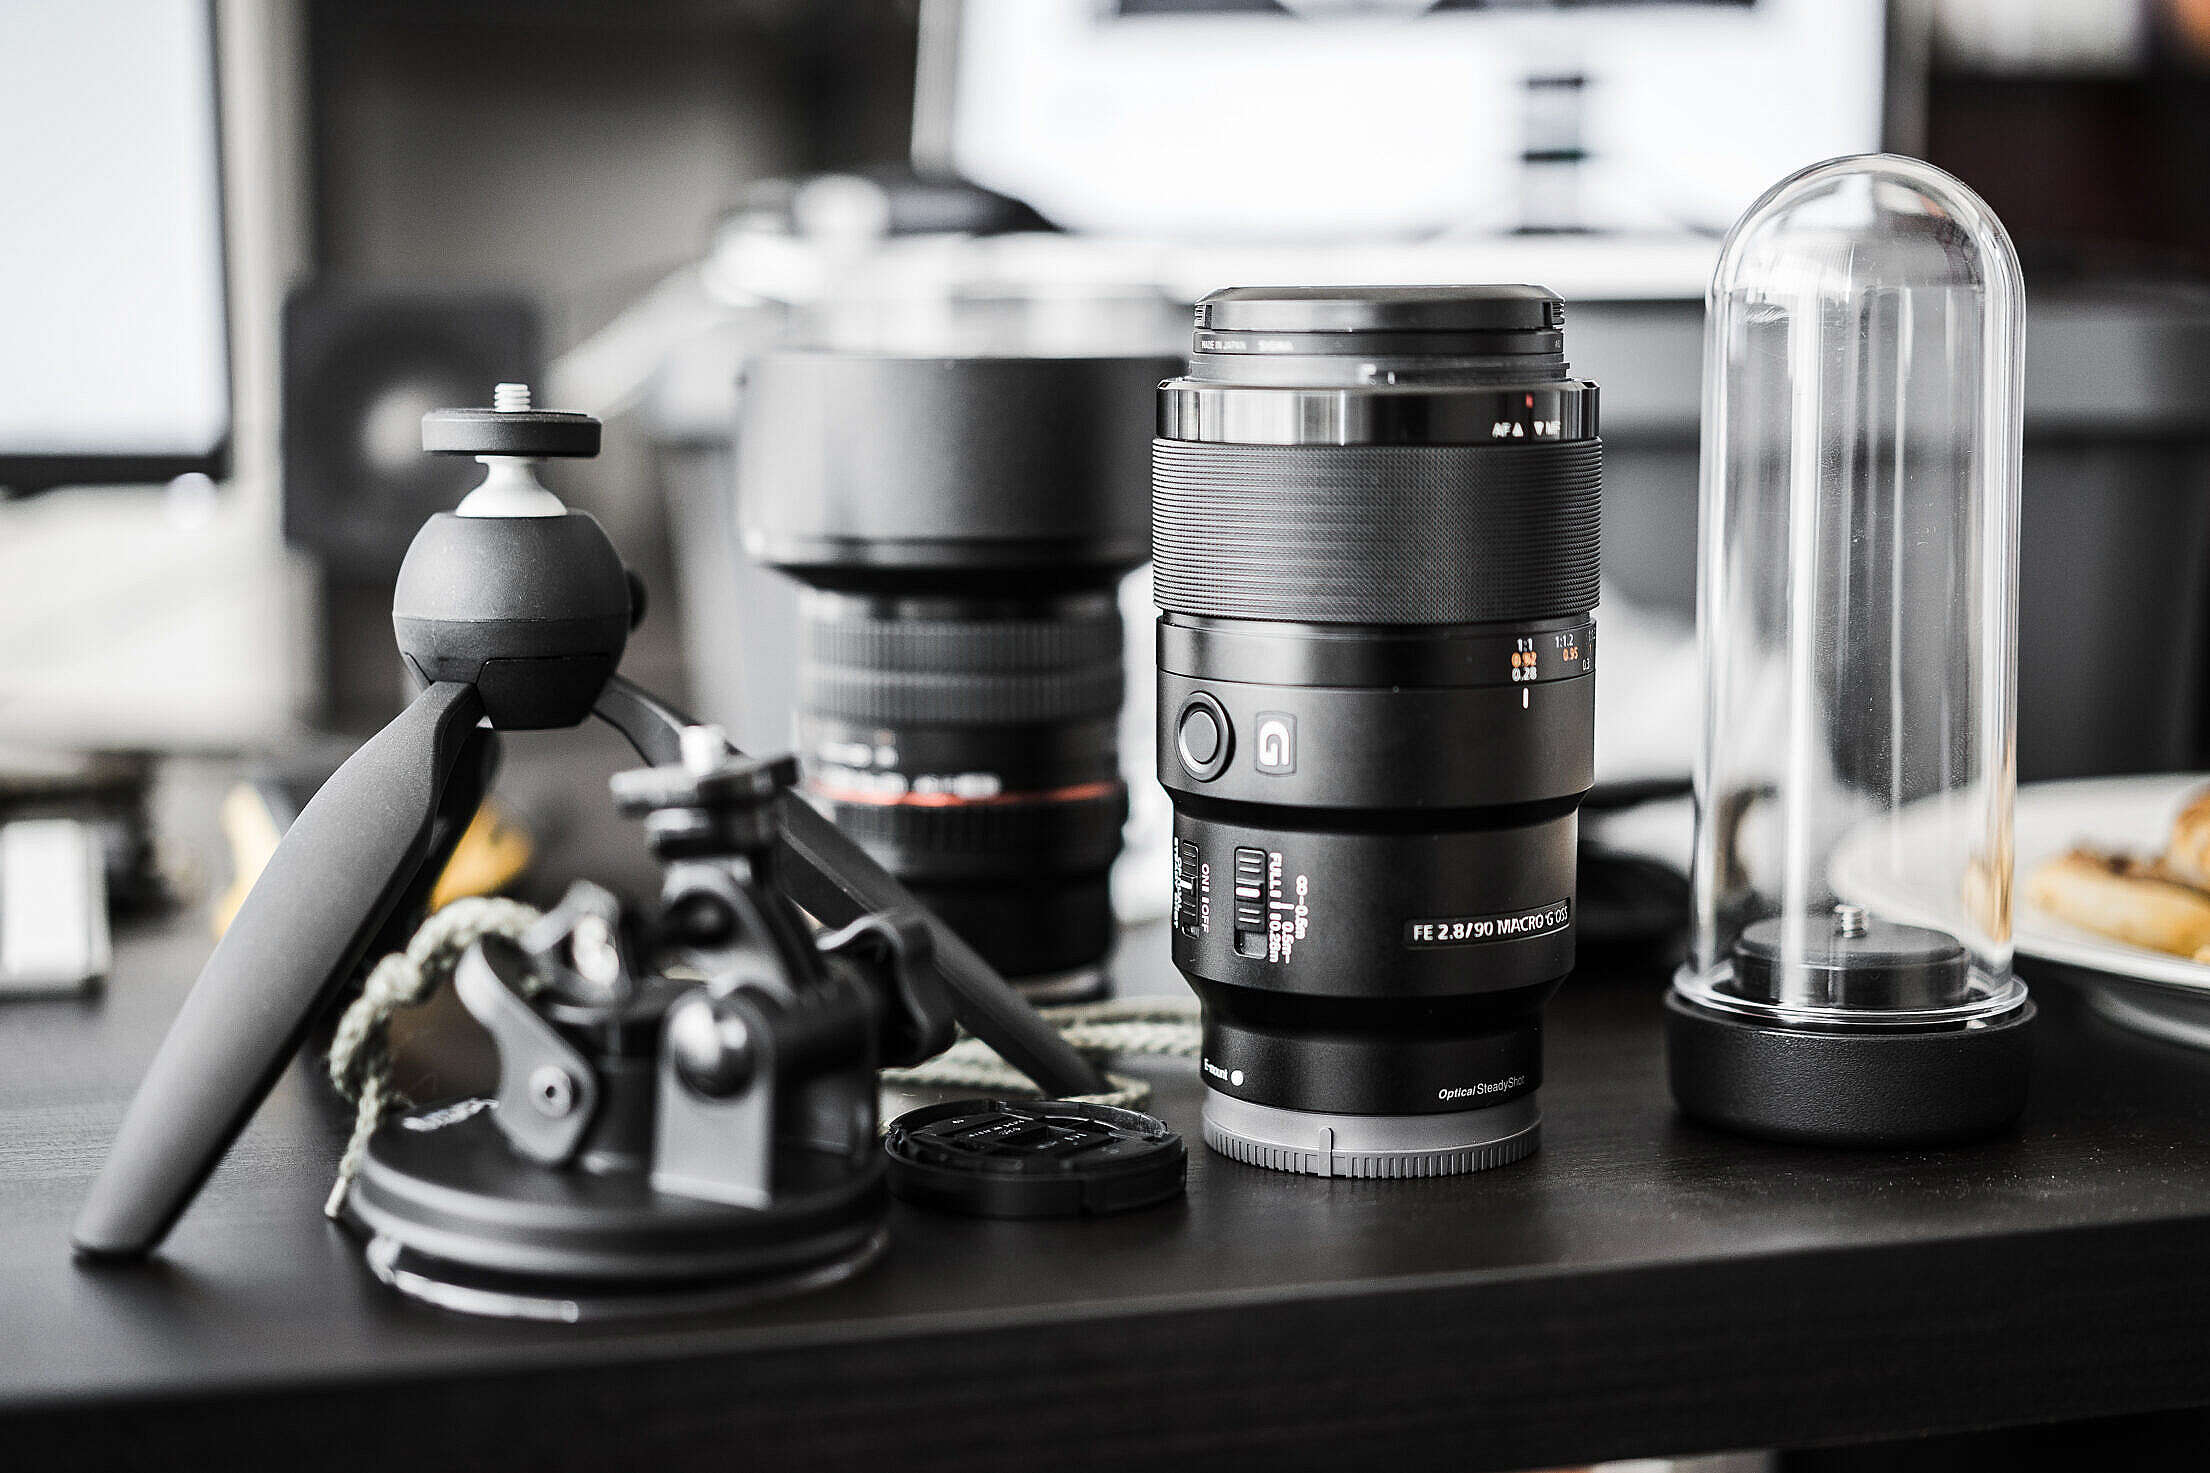 Workdesk Mess and Professional Photography Gear Free Stock Photo